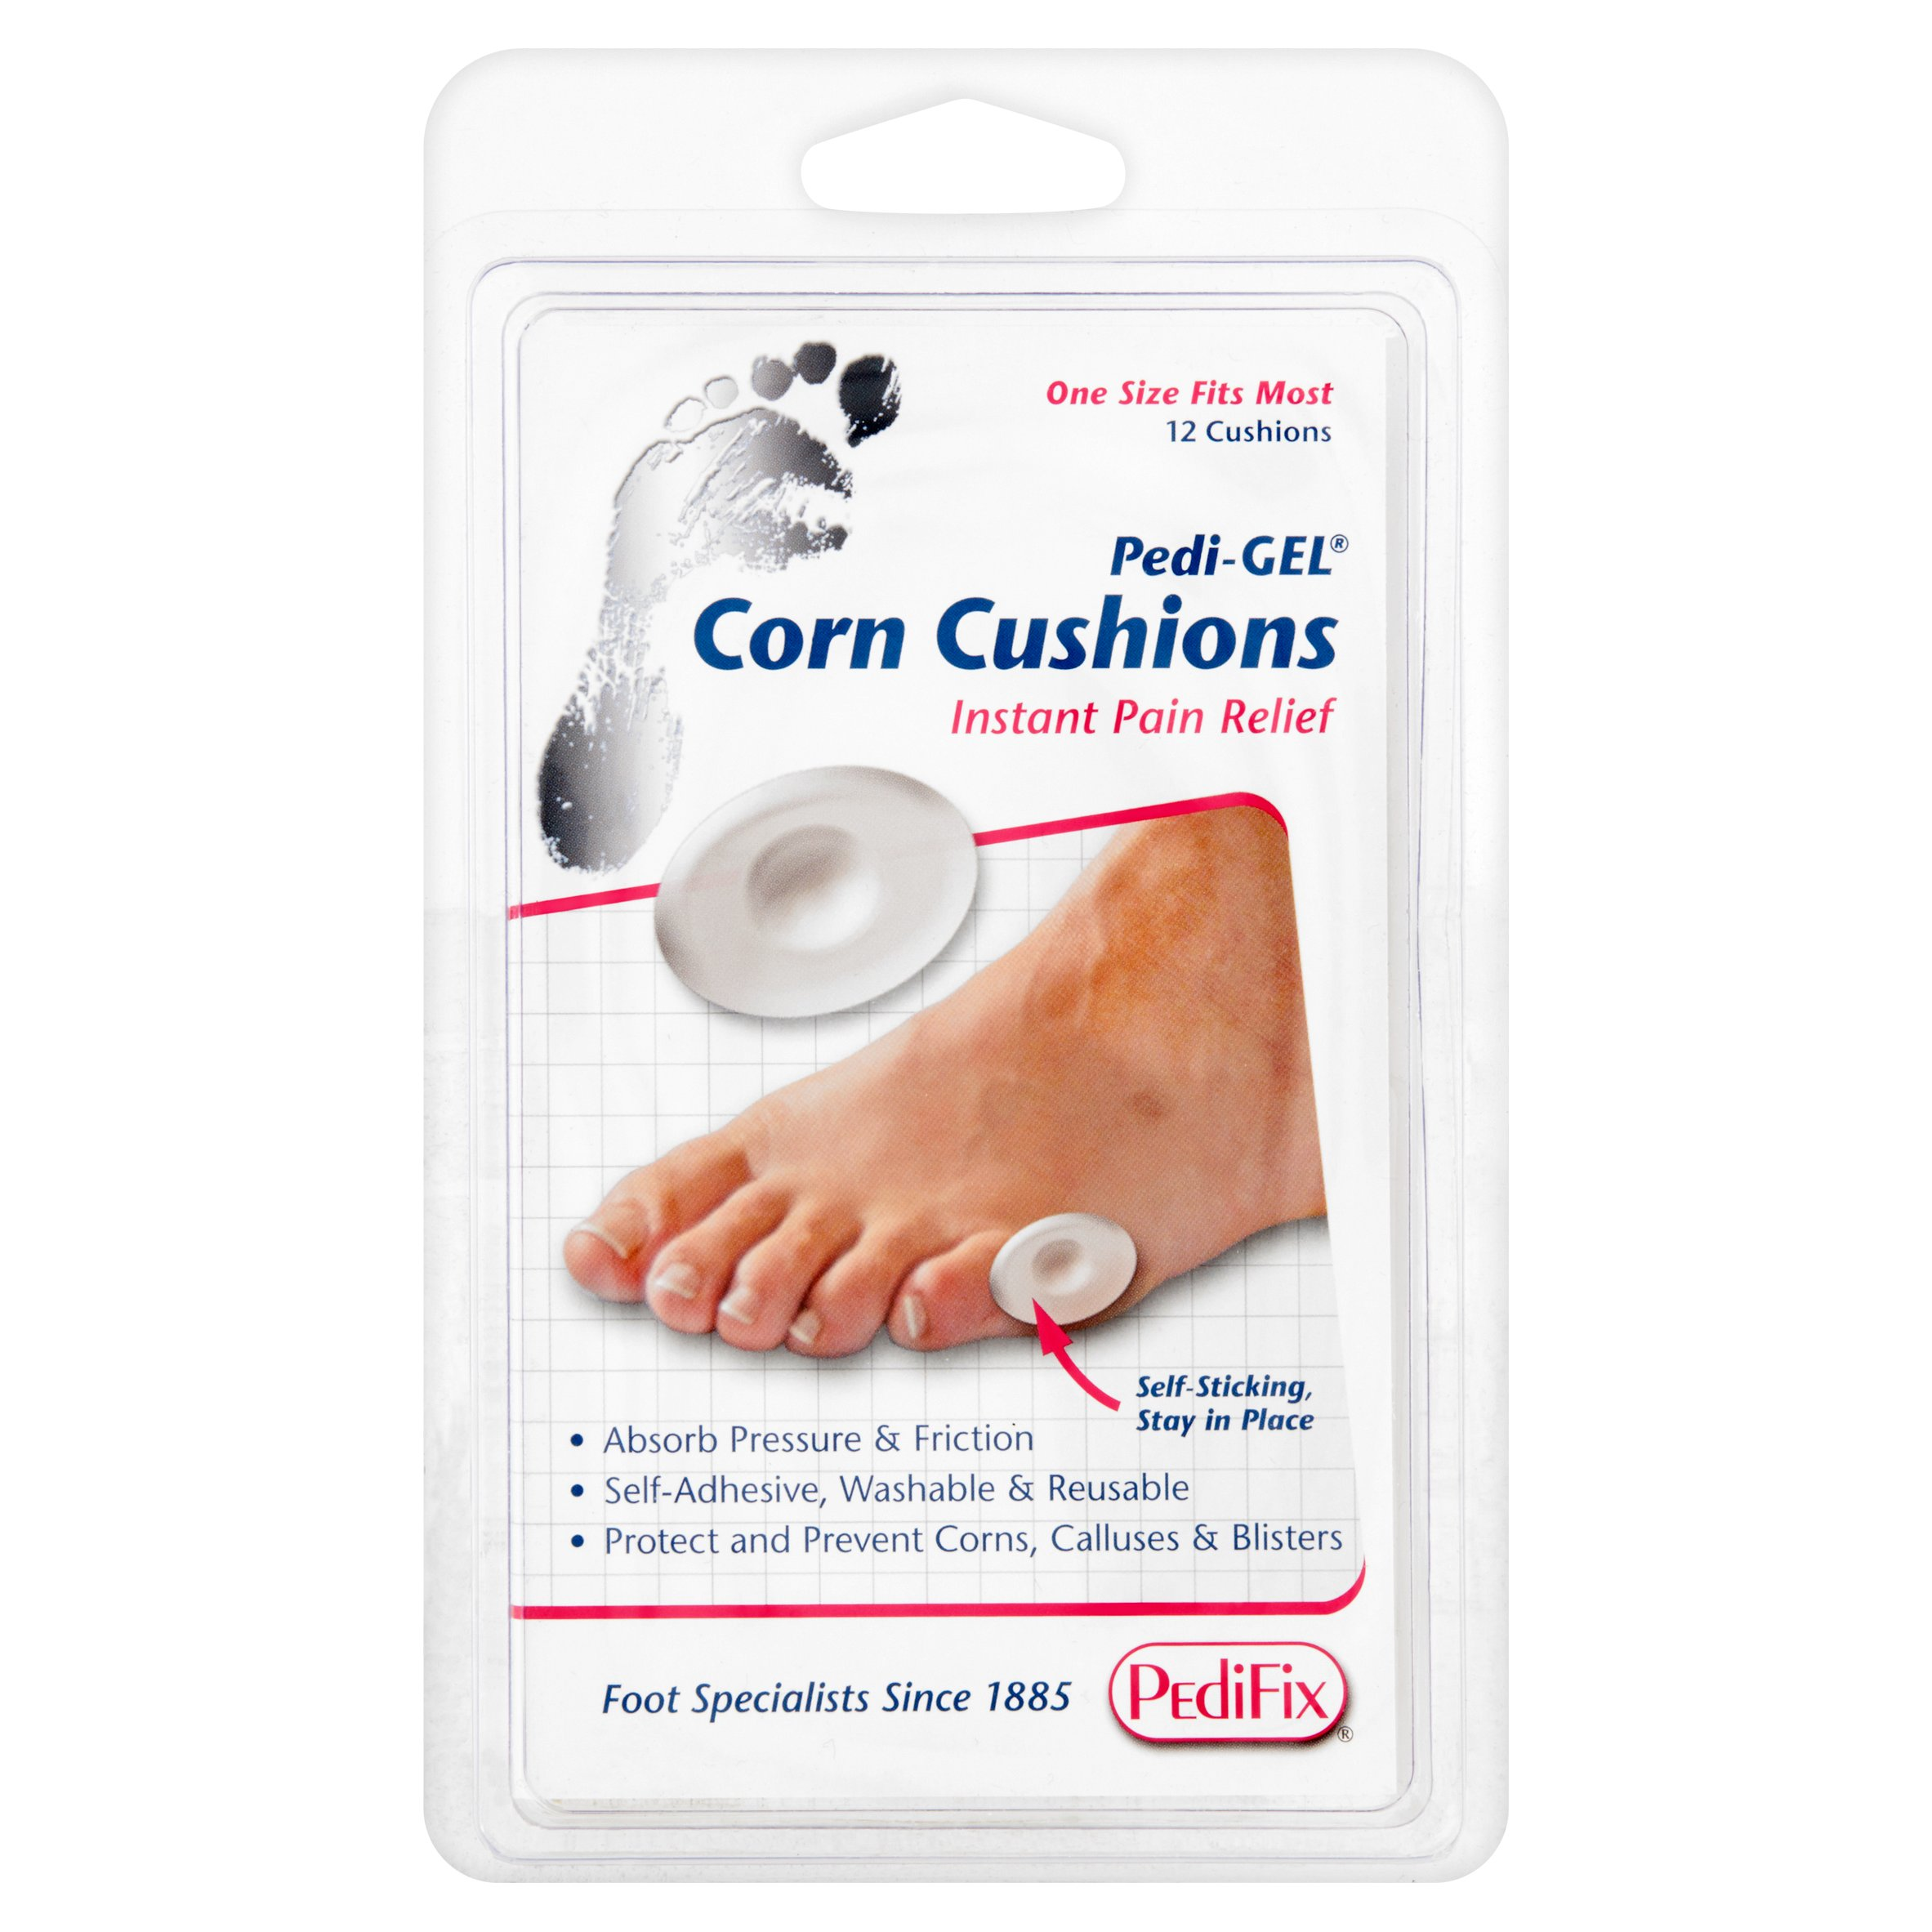 PediFix Pedi-GEL Corn Cushions, 12 count